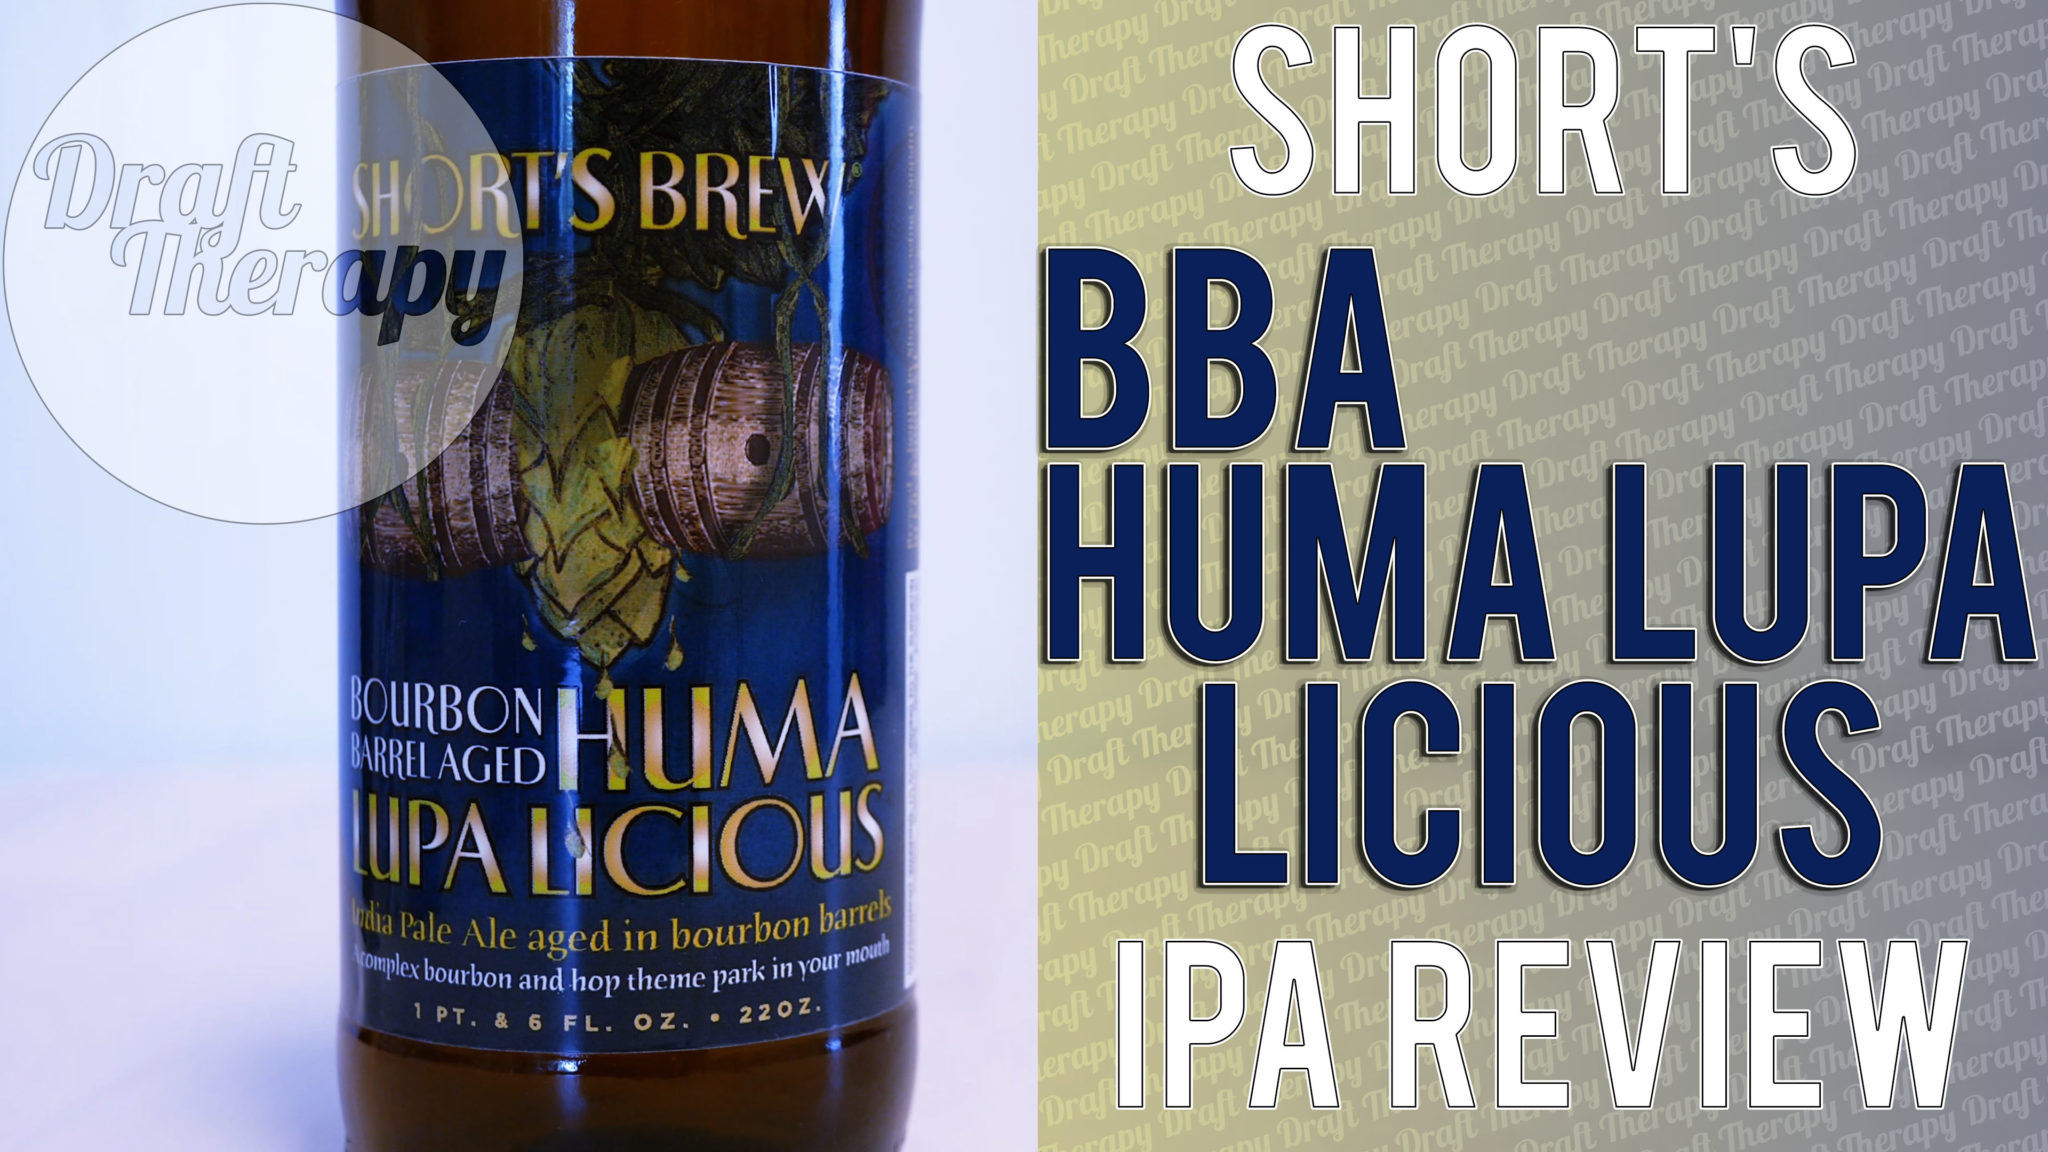 Short's Brewing – Bourbon Barrel Aged Huma Lupa Licious